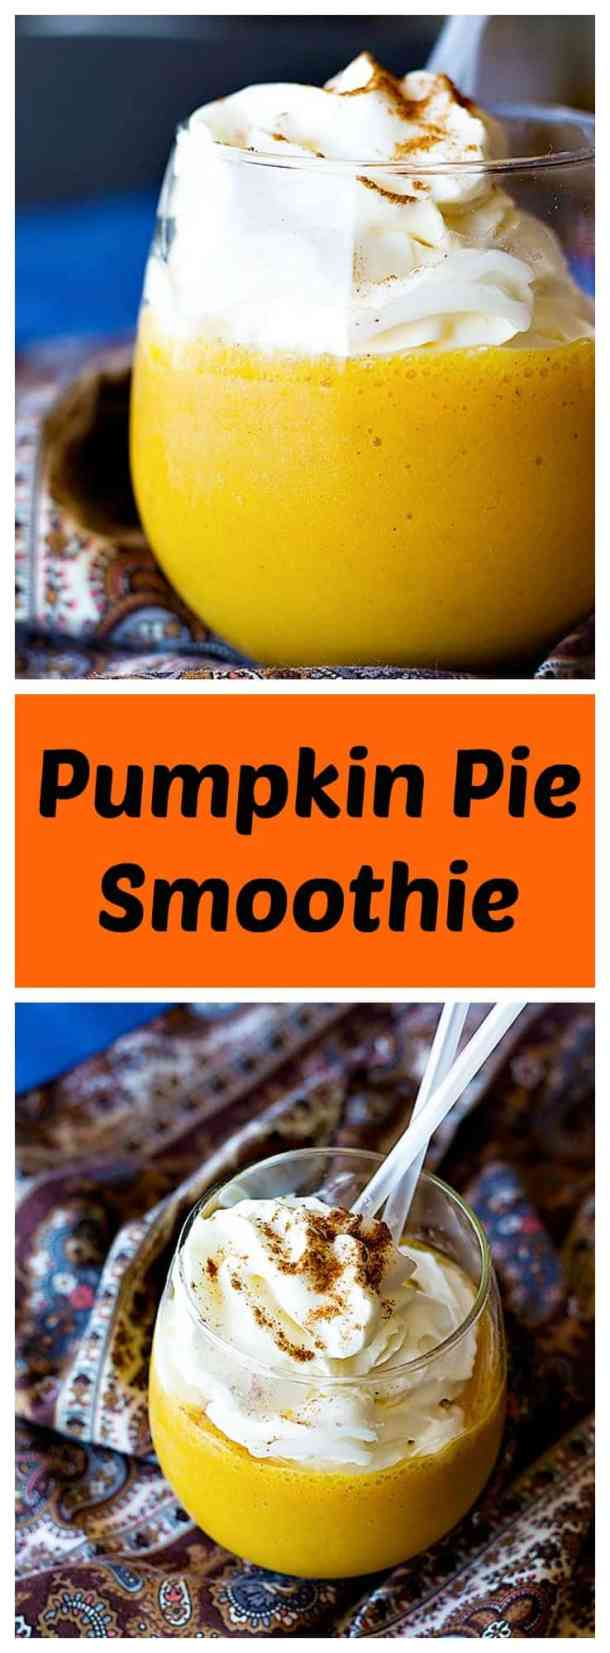 Start your morning with an all-time favorite fall dessert flavored smoothie. Pumpkin Pie Smoothie is naturally sweetened and tastes just like pumpkin pie!